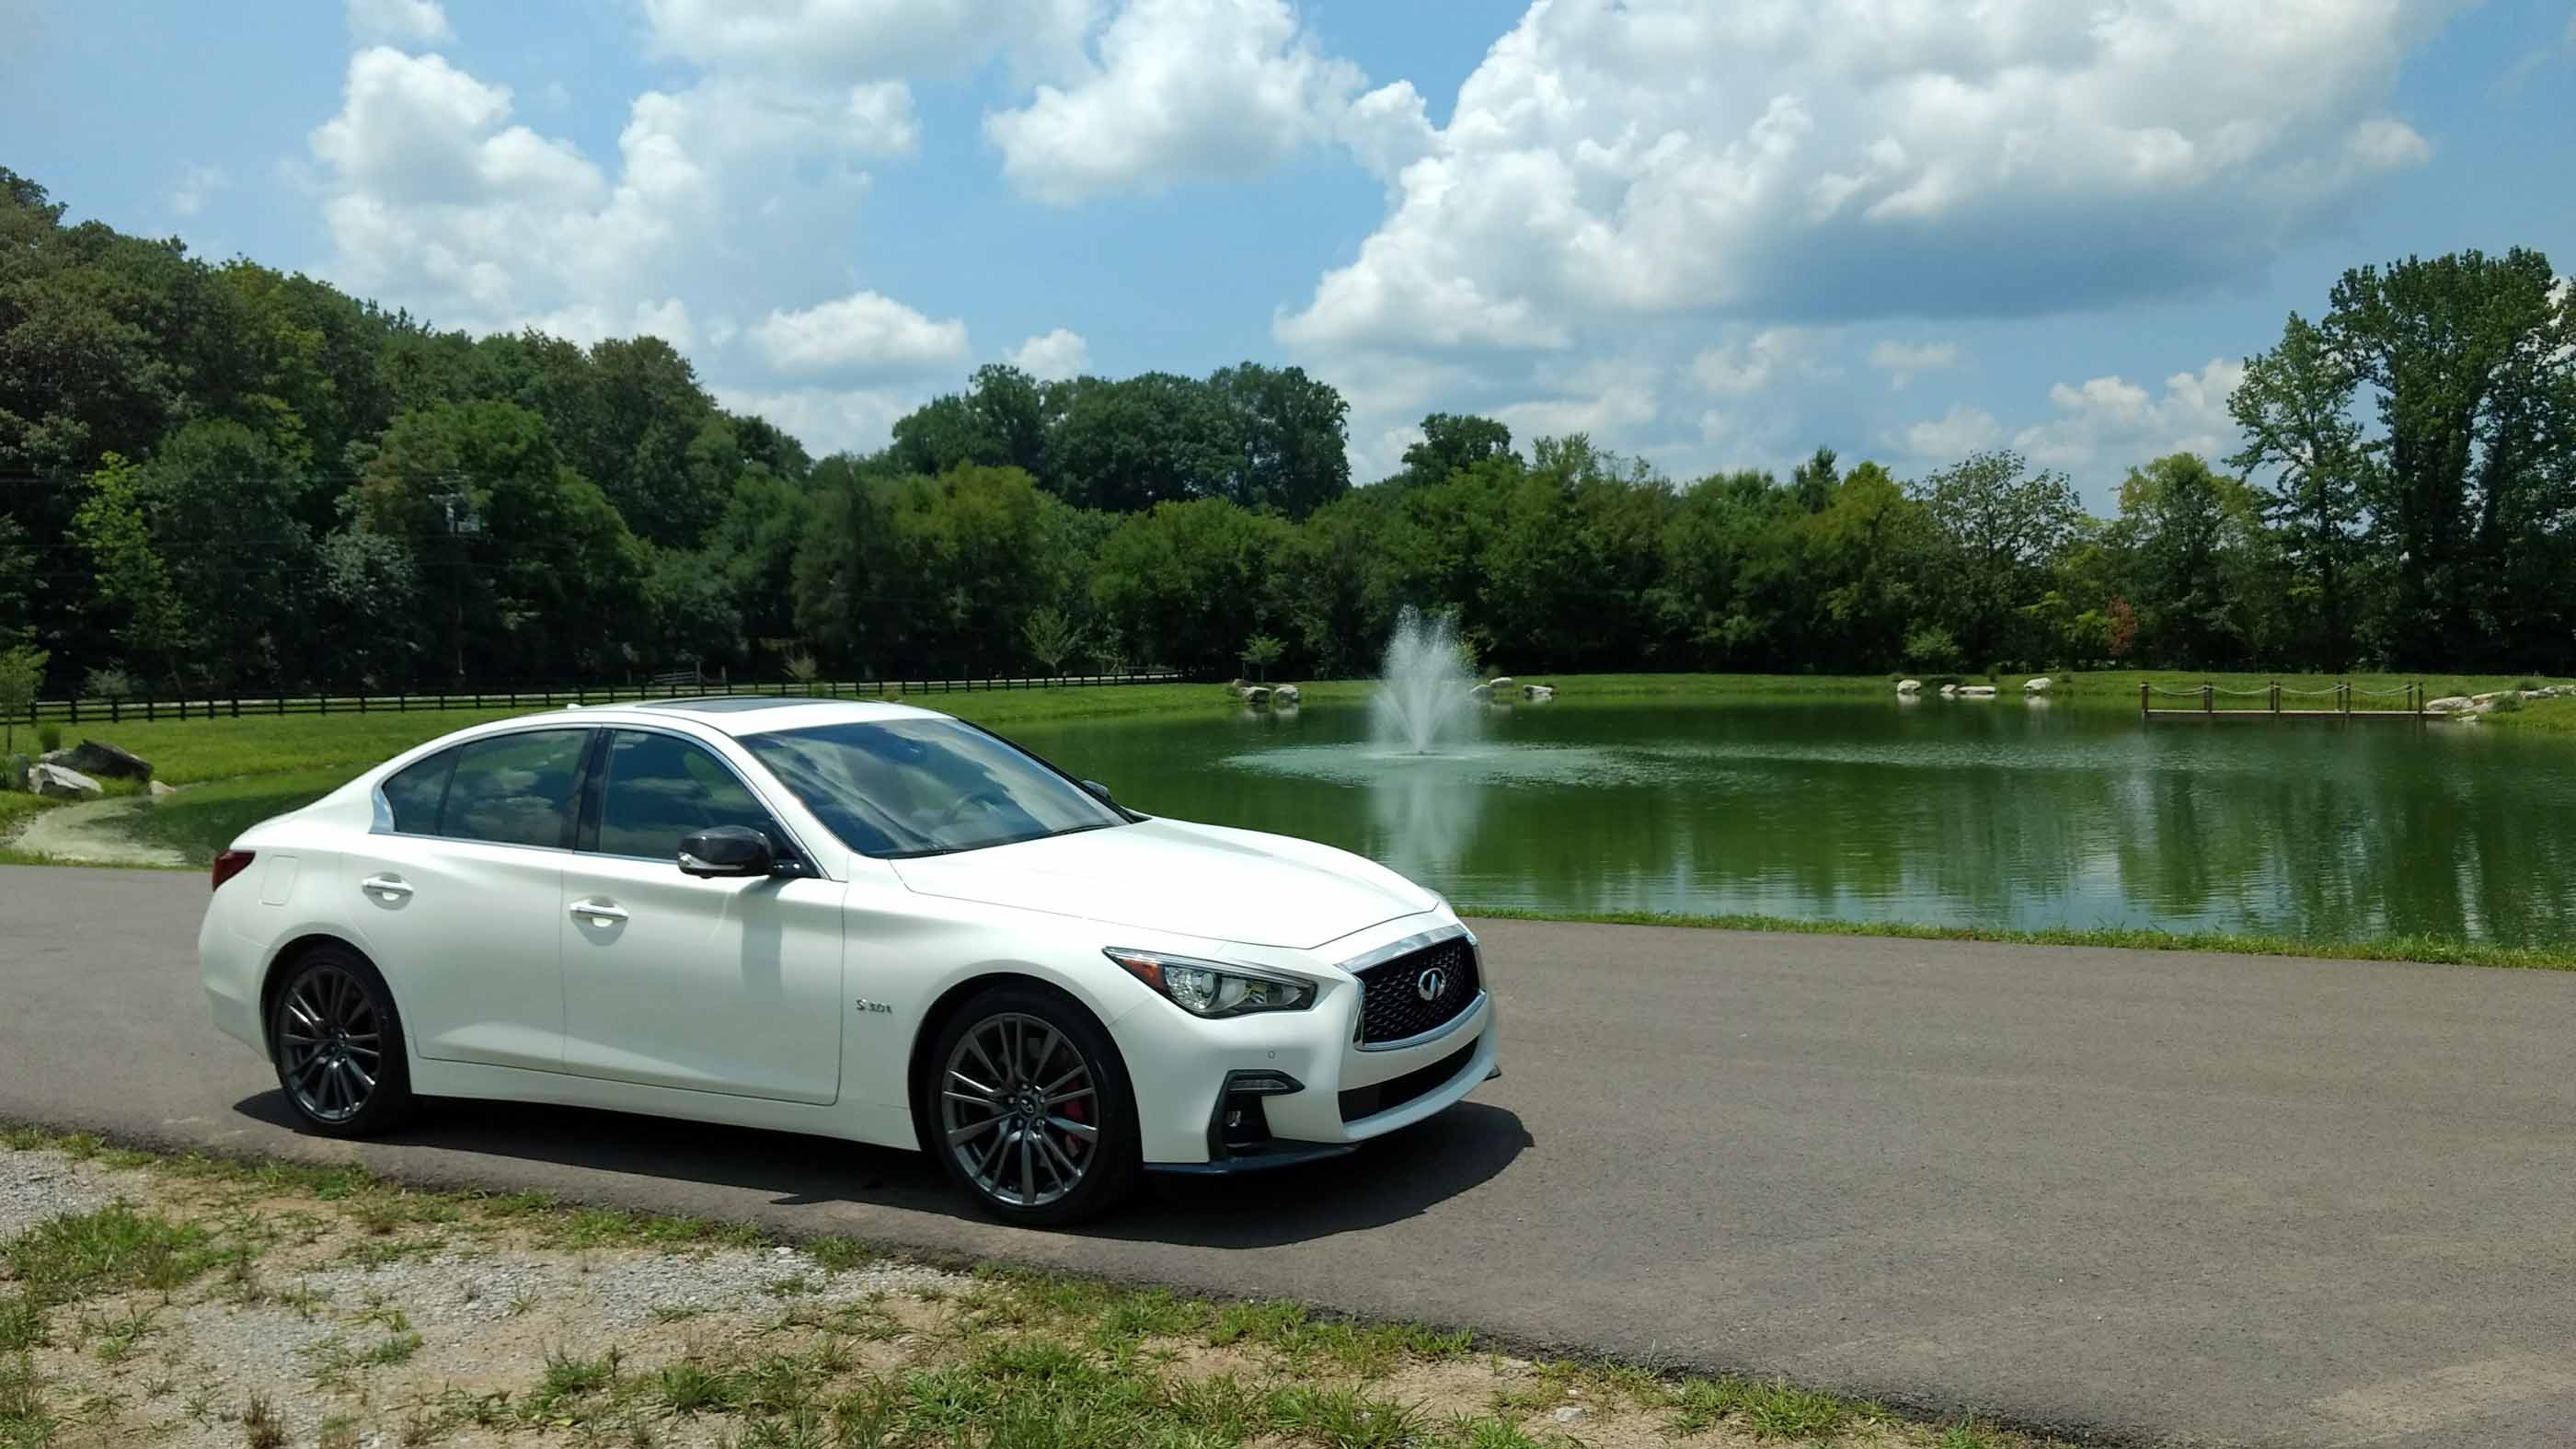 2018 infiniti q50. Simple Q50 2018infinitiq50review08 Intended 2018 Infiniti Q50